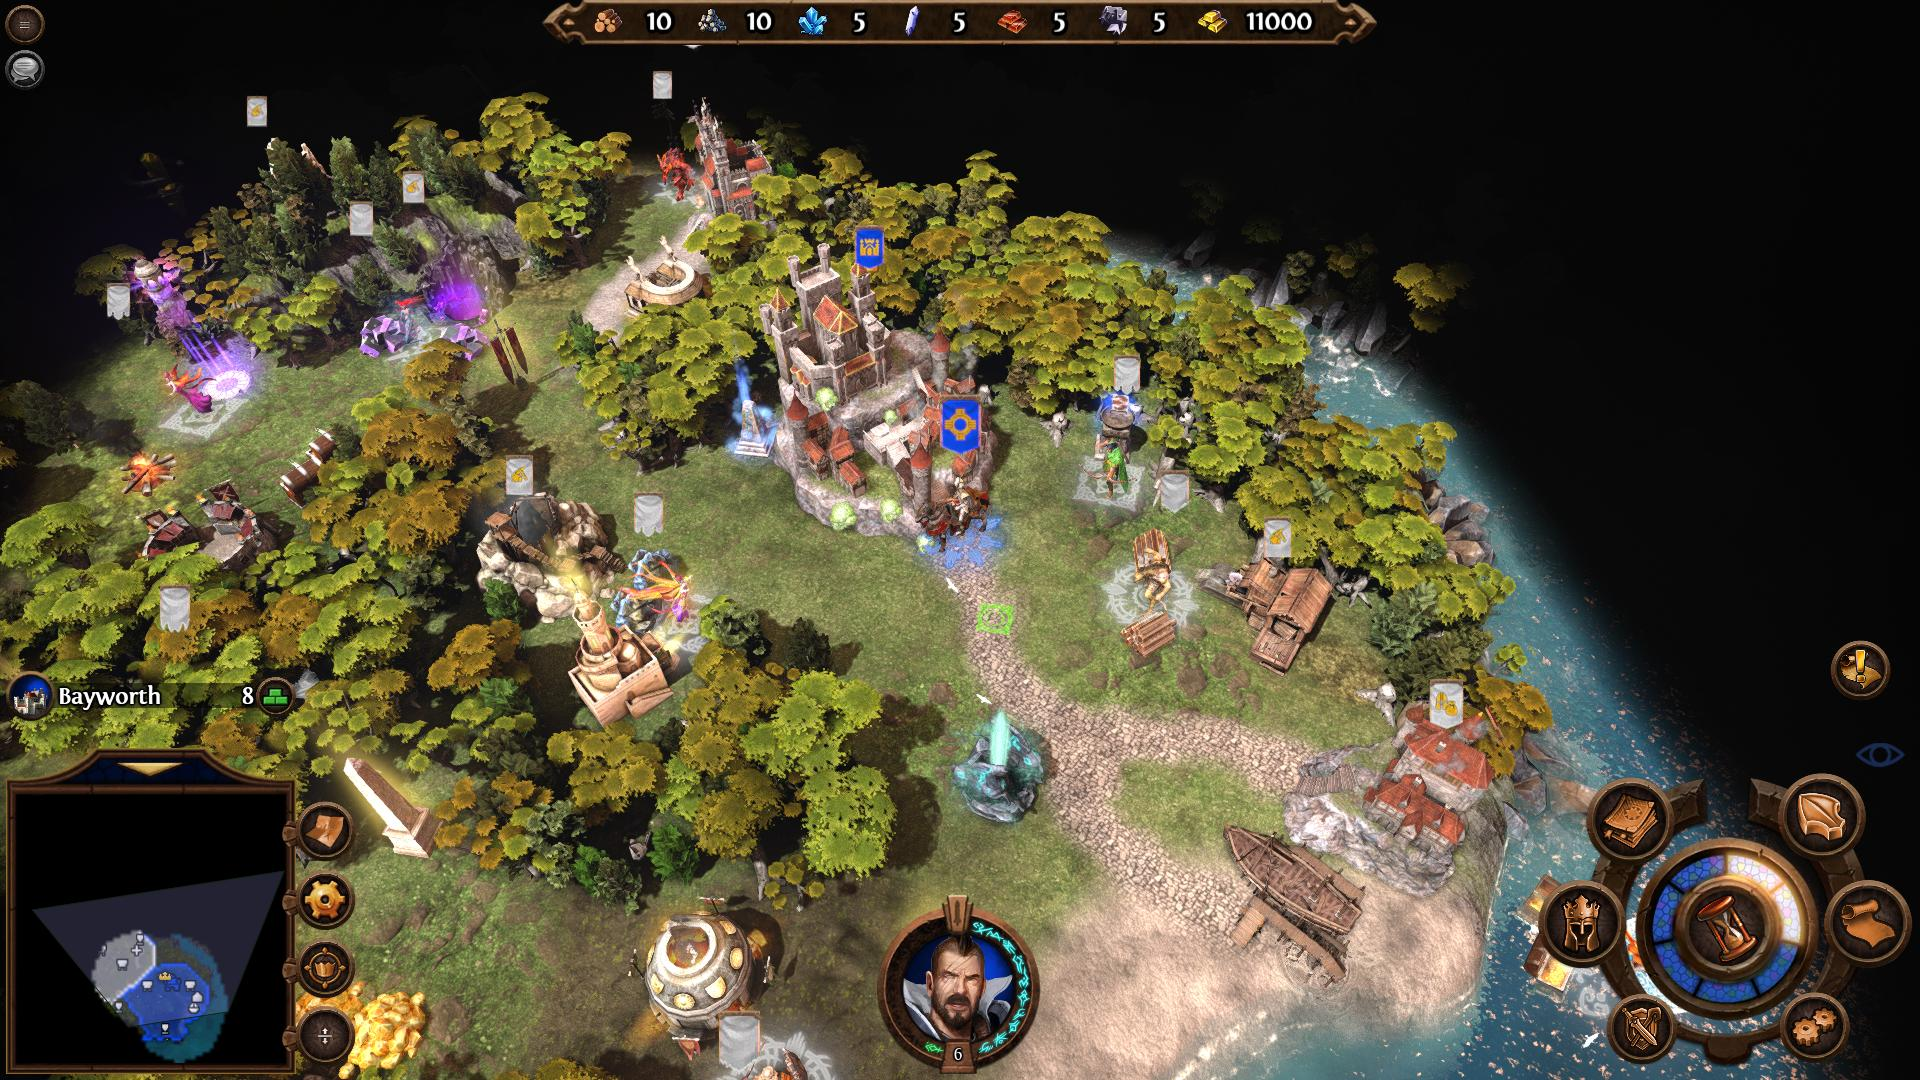 Heroes of might and magic 2 steam engine